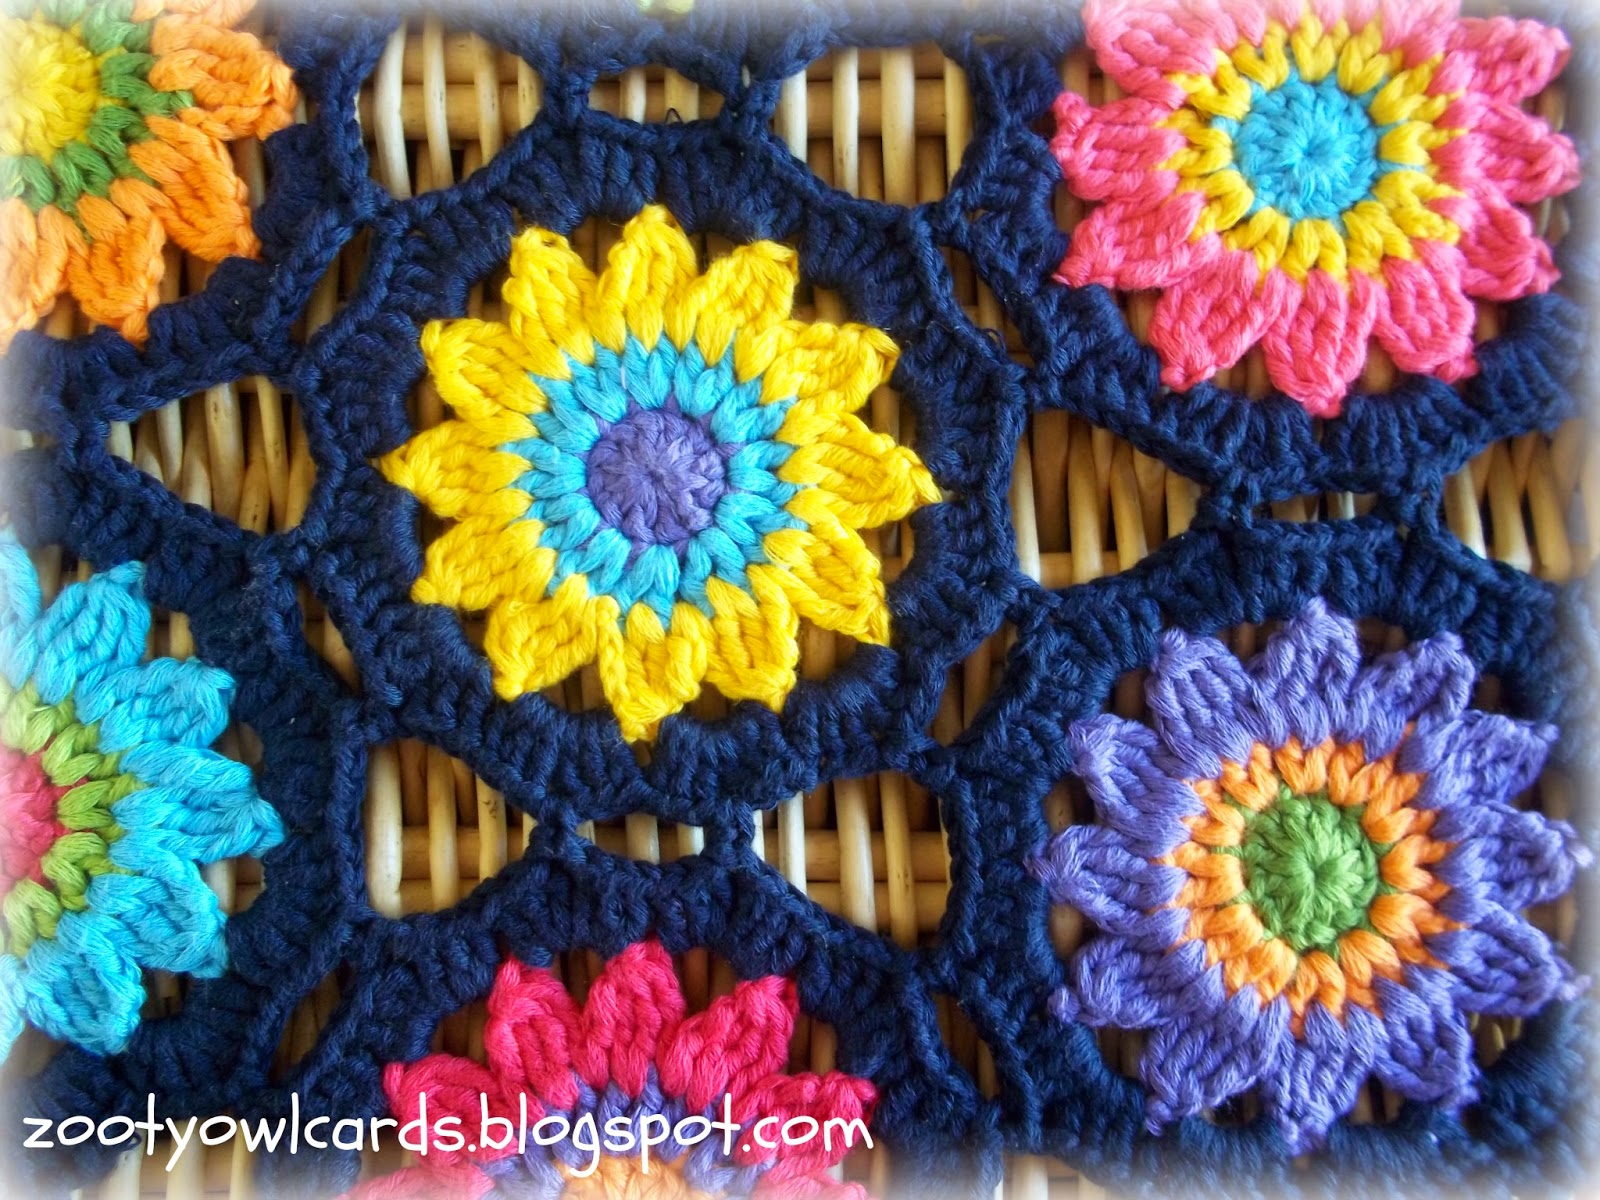 Free Crochet Pattern Flower Table Runner : Crochet Sunny Flower Motif Table Runner ? Crochet Kingdom